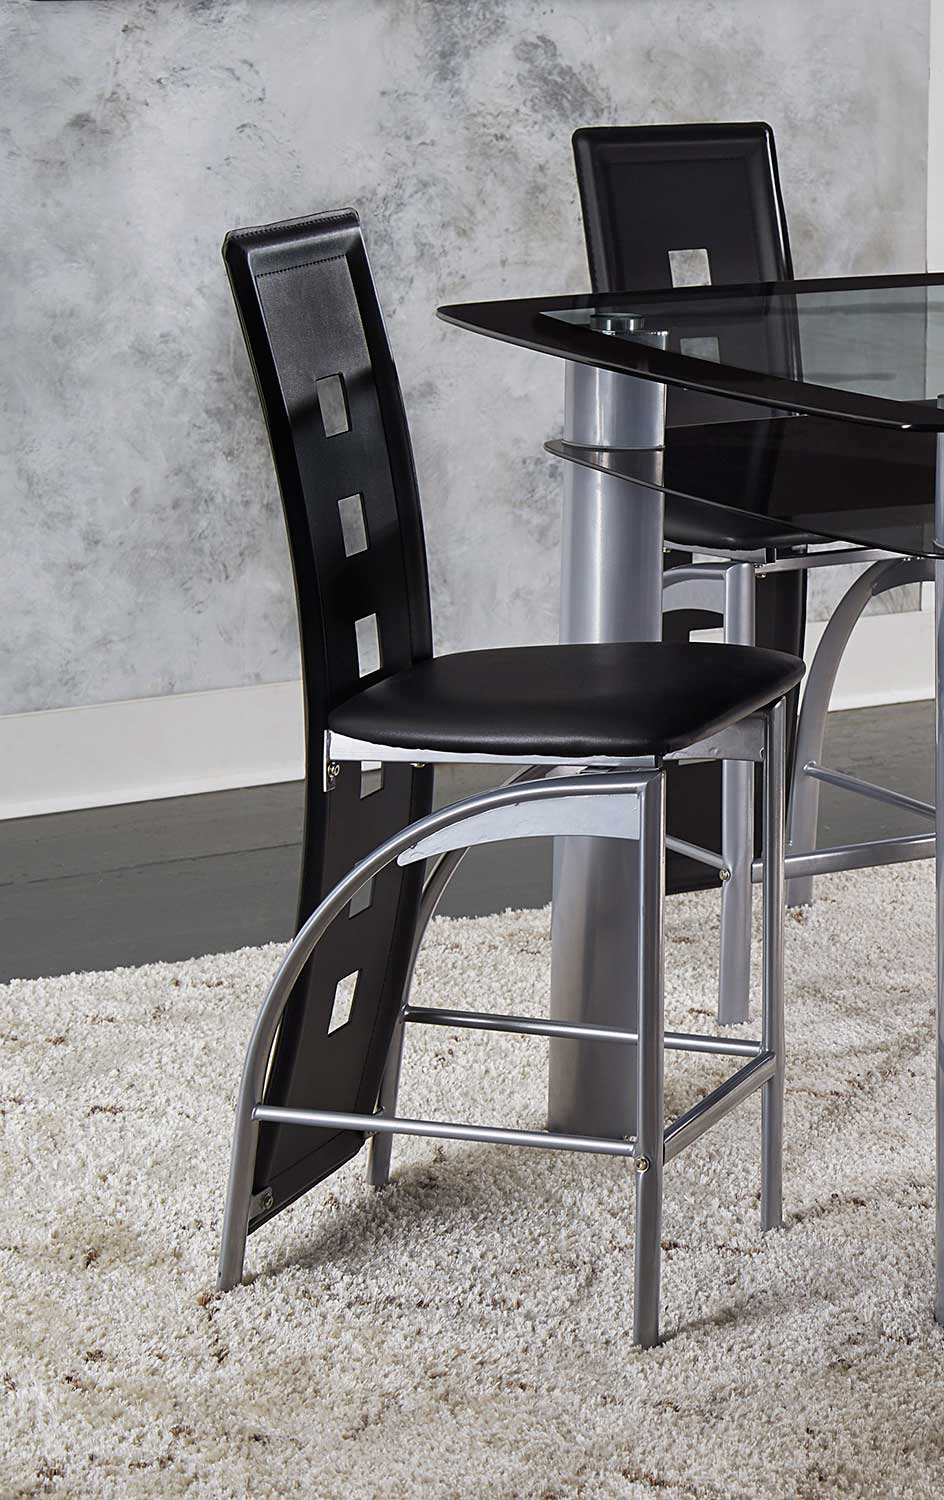 Homelegance Sona Counter Height Chair - Metal